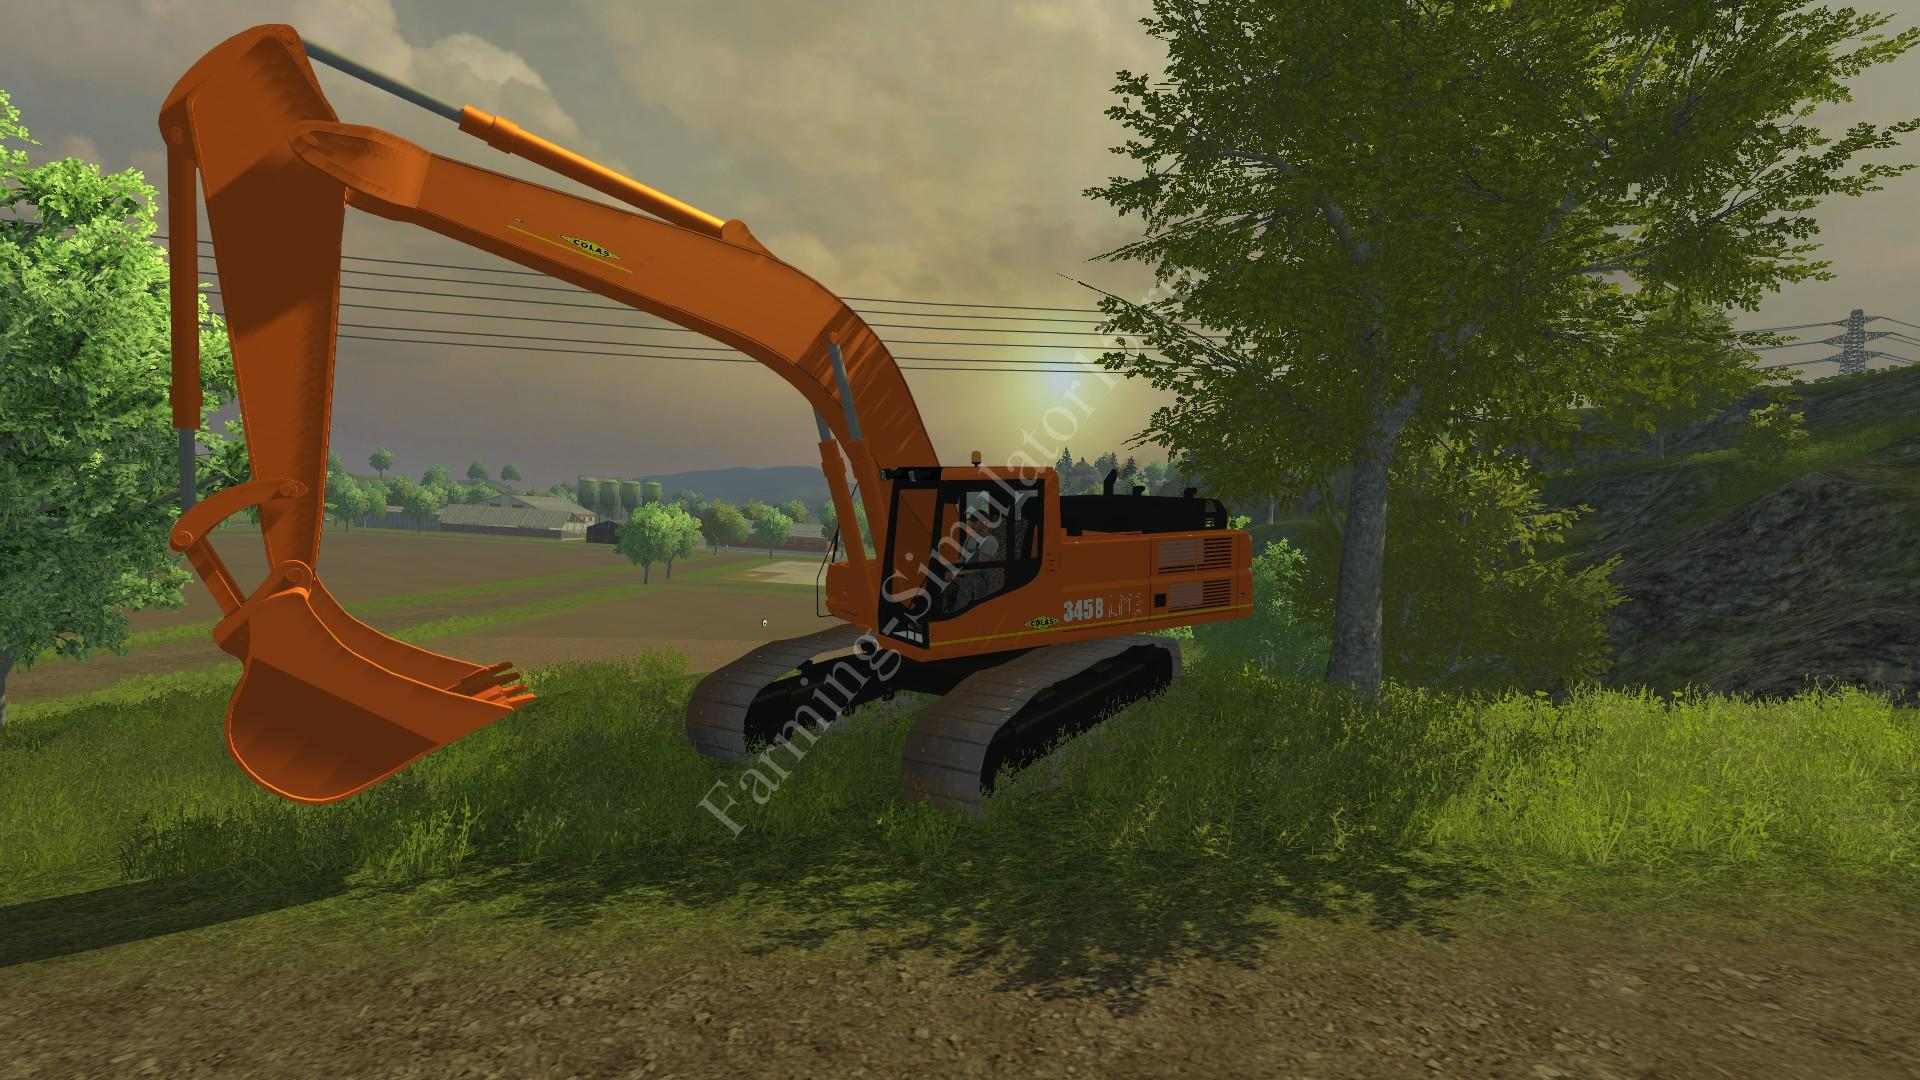 Мод экскаватора CAT 345B Colas v 2.1 Farming Simulator 2013, Farming Simulator 13